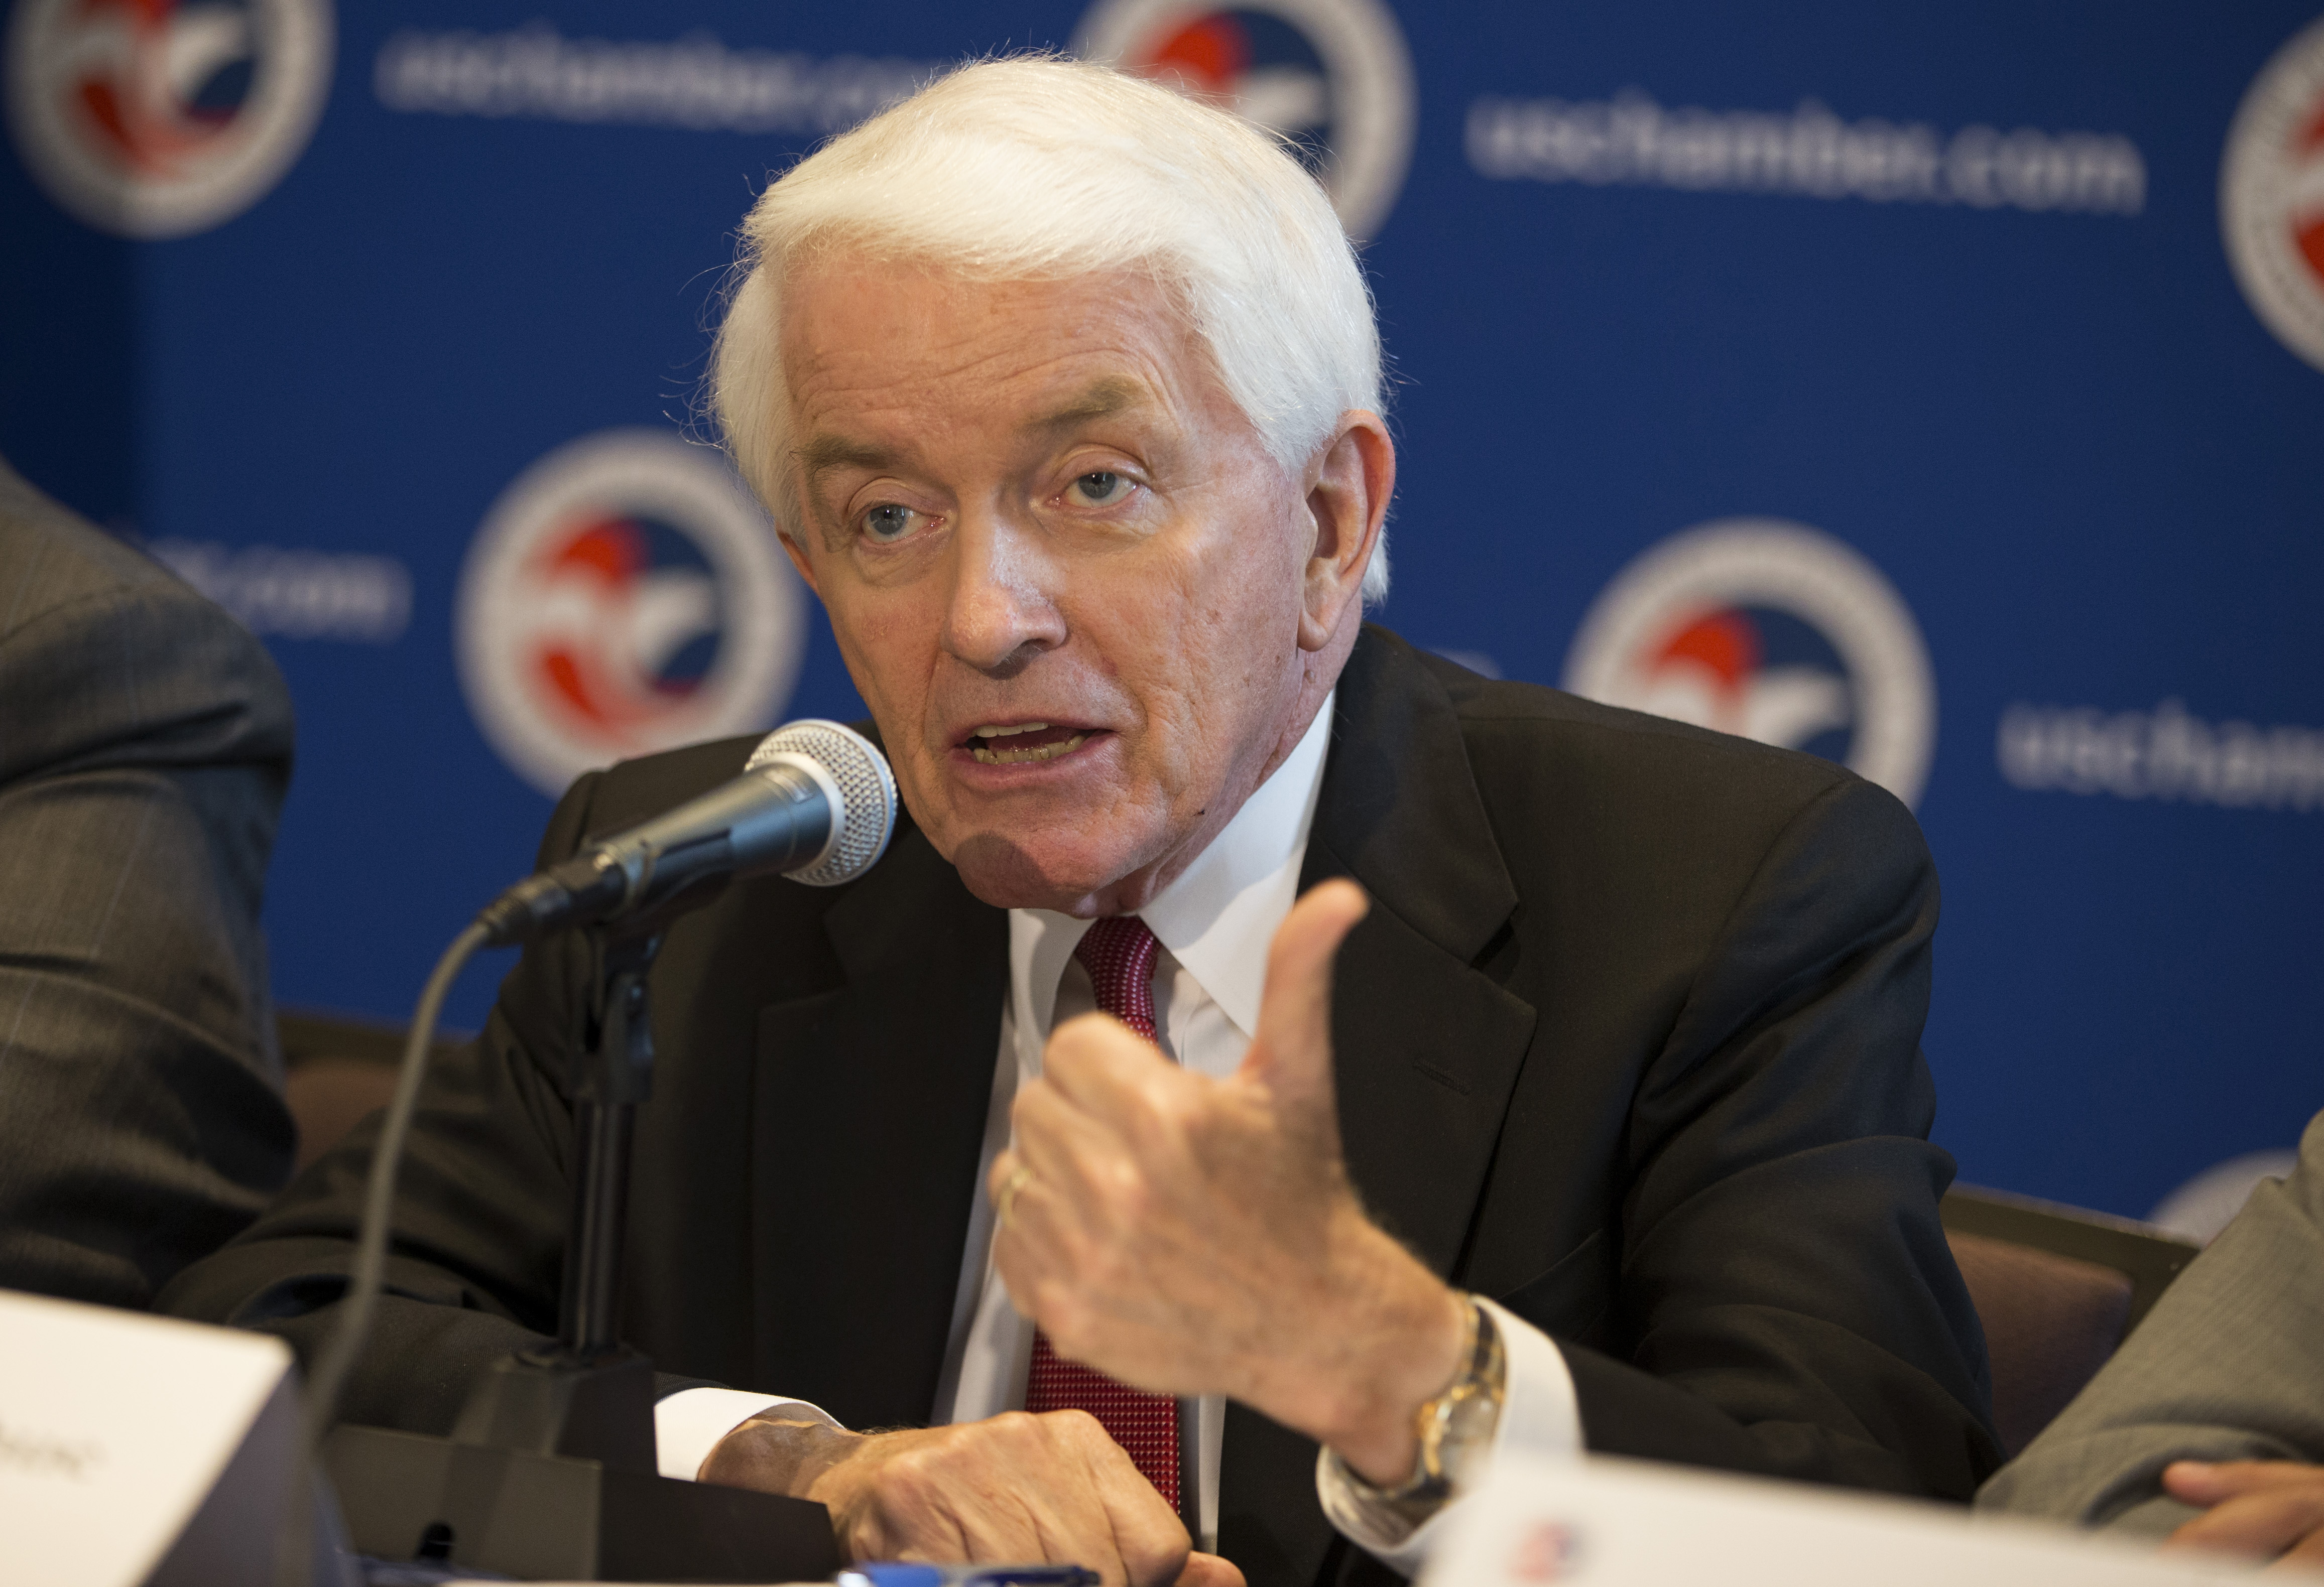 U.S. Chamber of Commerce President and CEO Tom Donohue speaks during a news conference at the U.S. Chamber of Commerce in Washington on July 9, 2014.